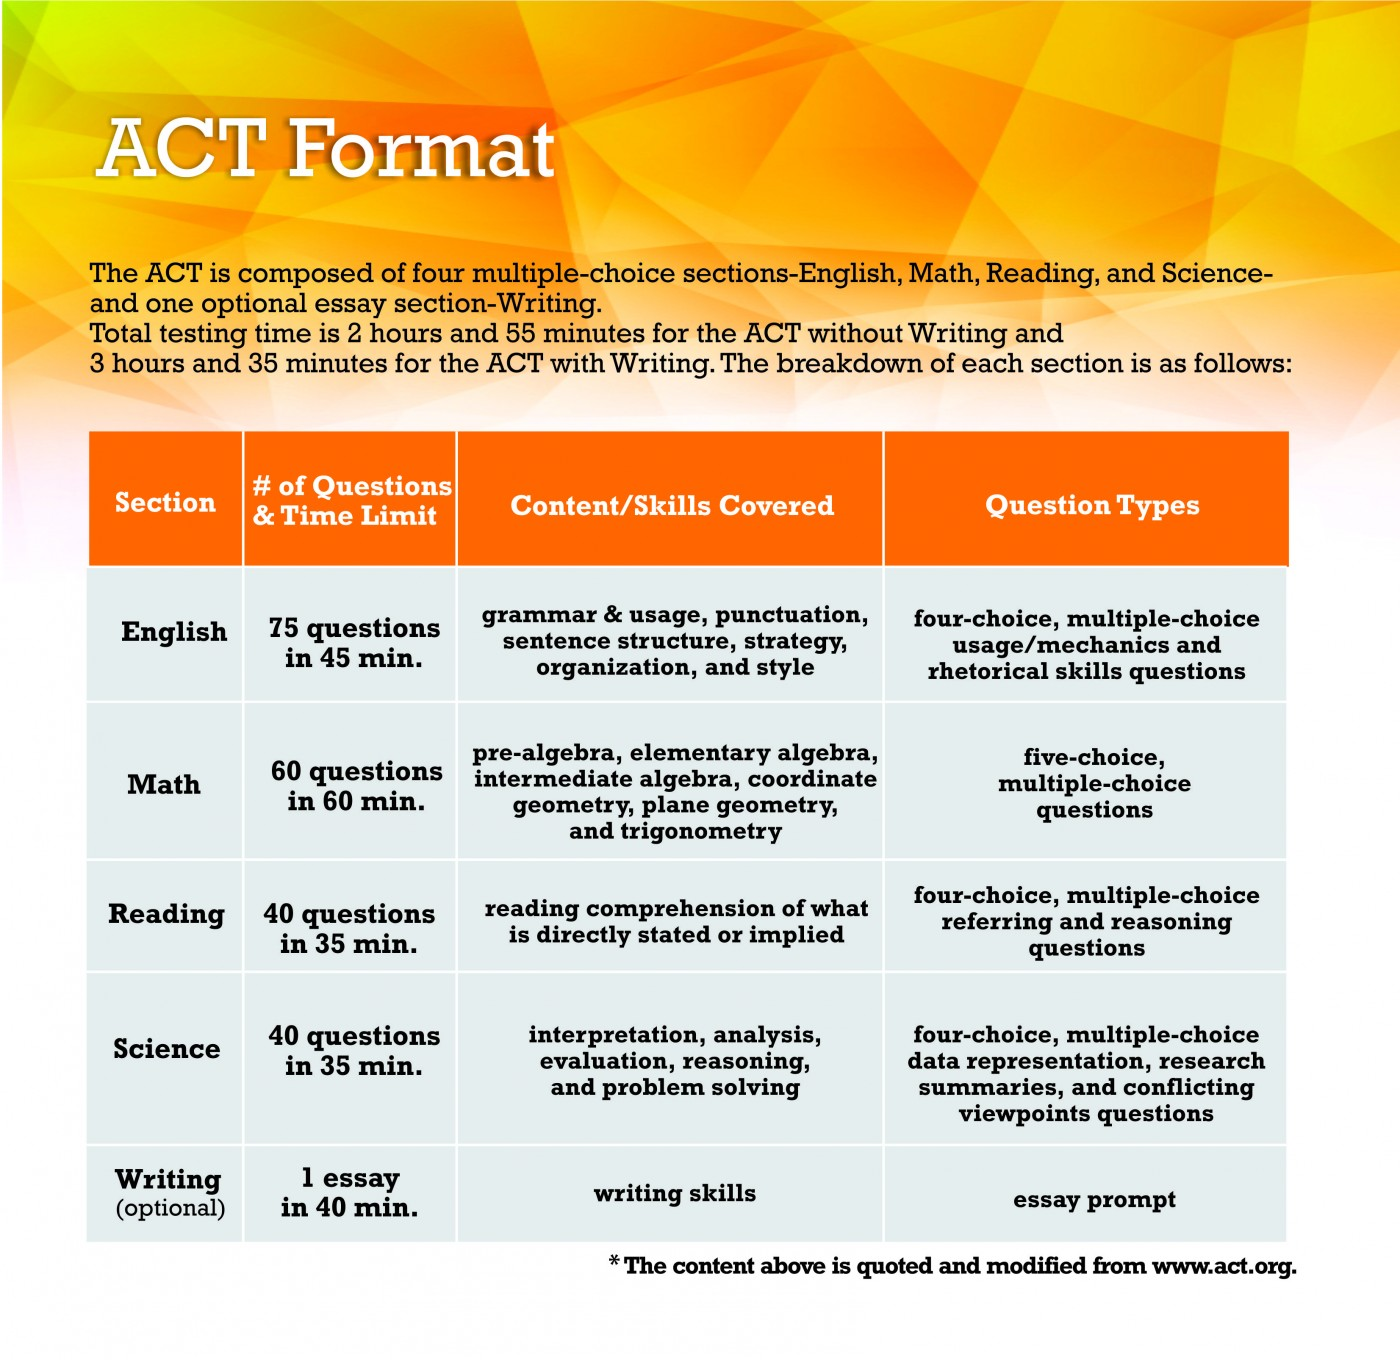 009 Act Format Essay Fearsome Topics Prompt New Time Limit 1400